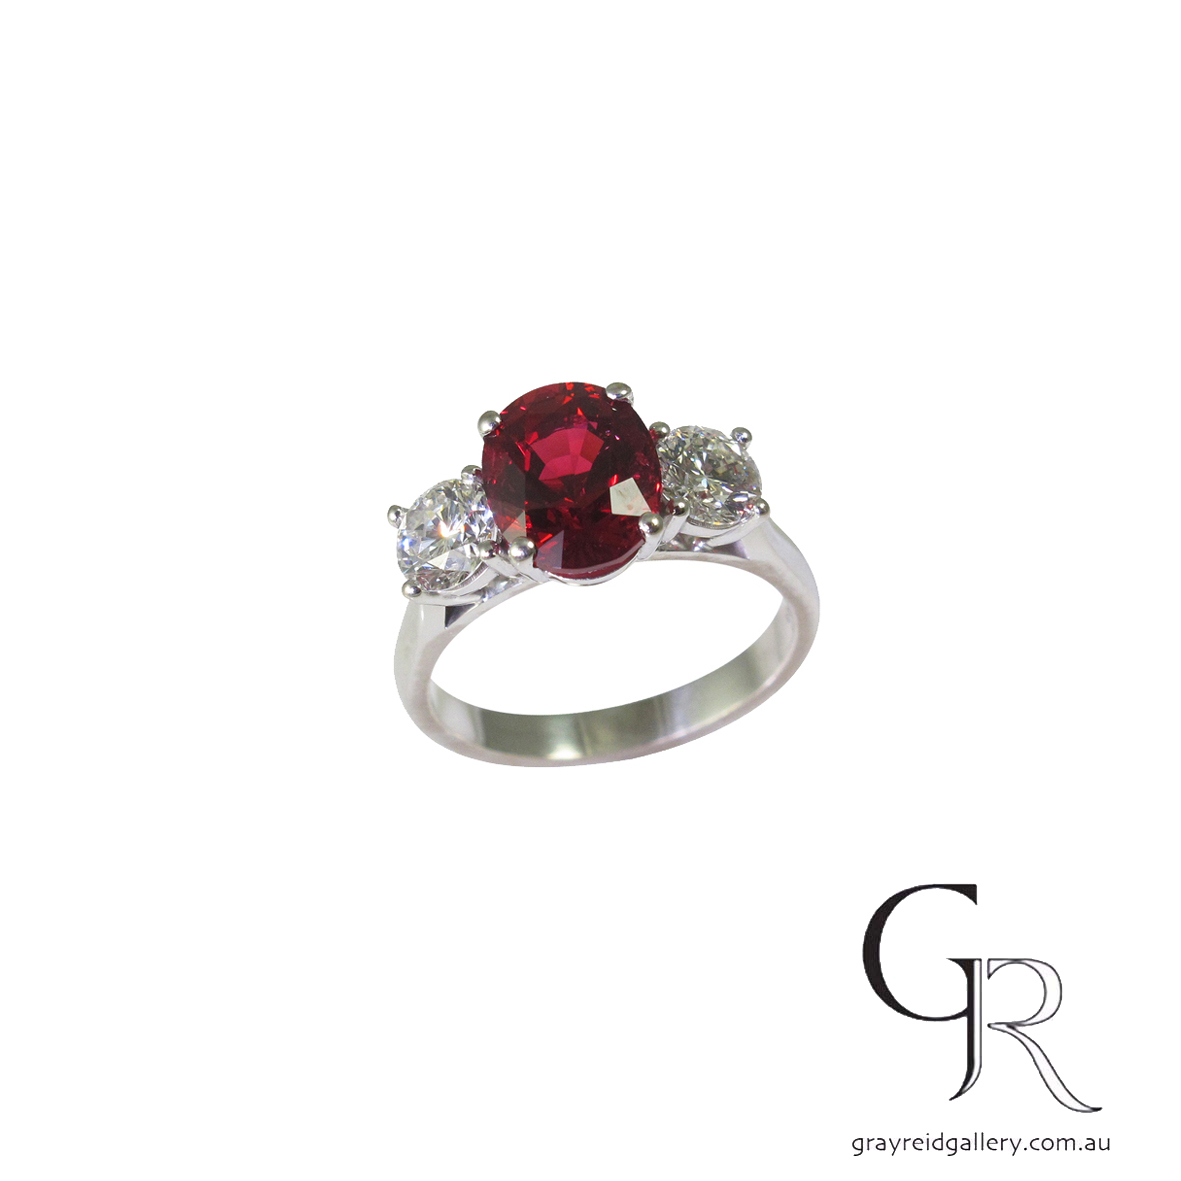 Spinel and diamond engagement ring melbourne gray reid gallery.JPG